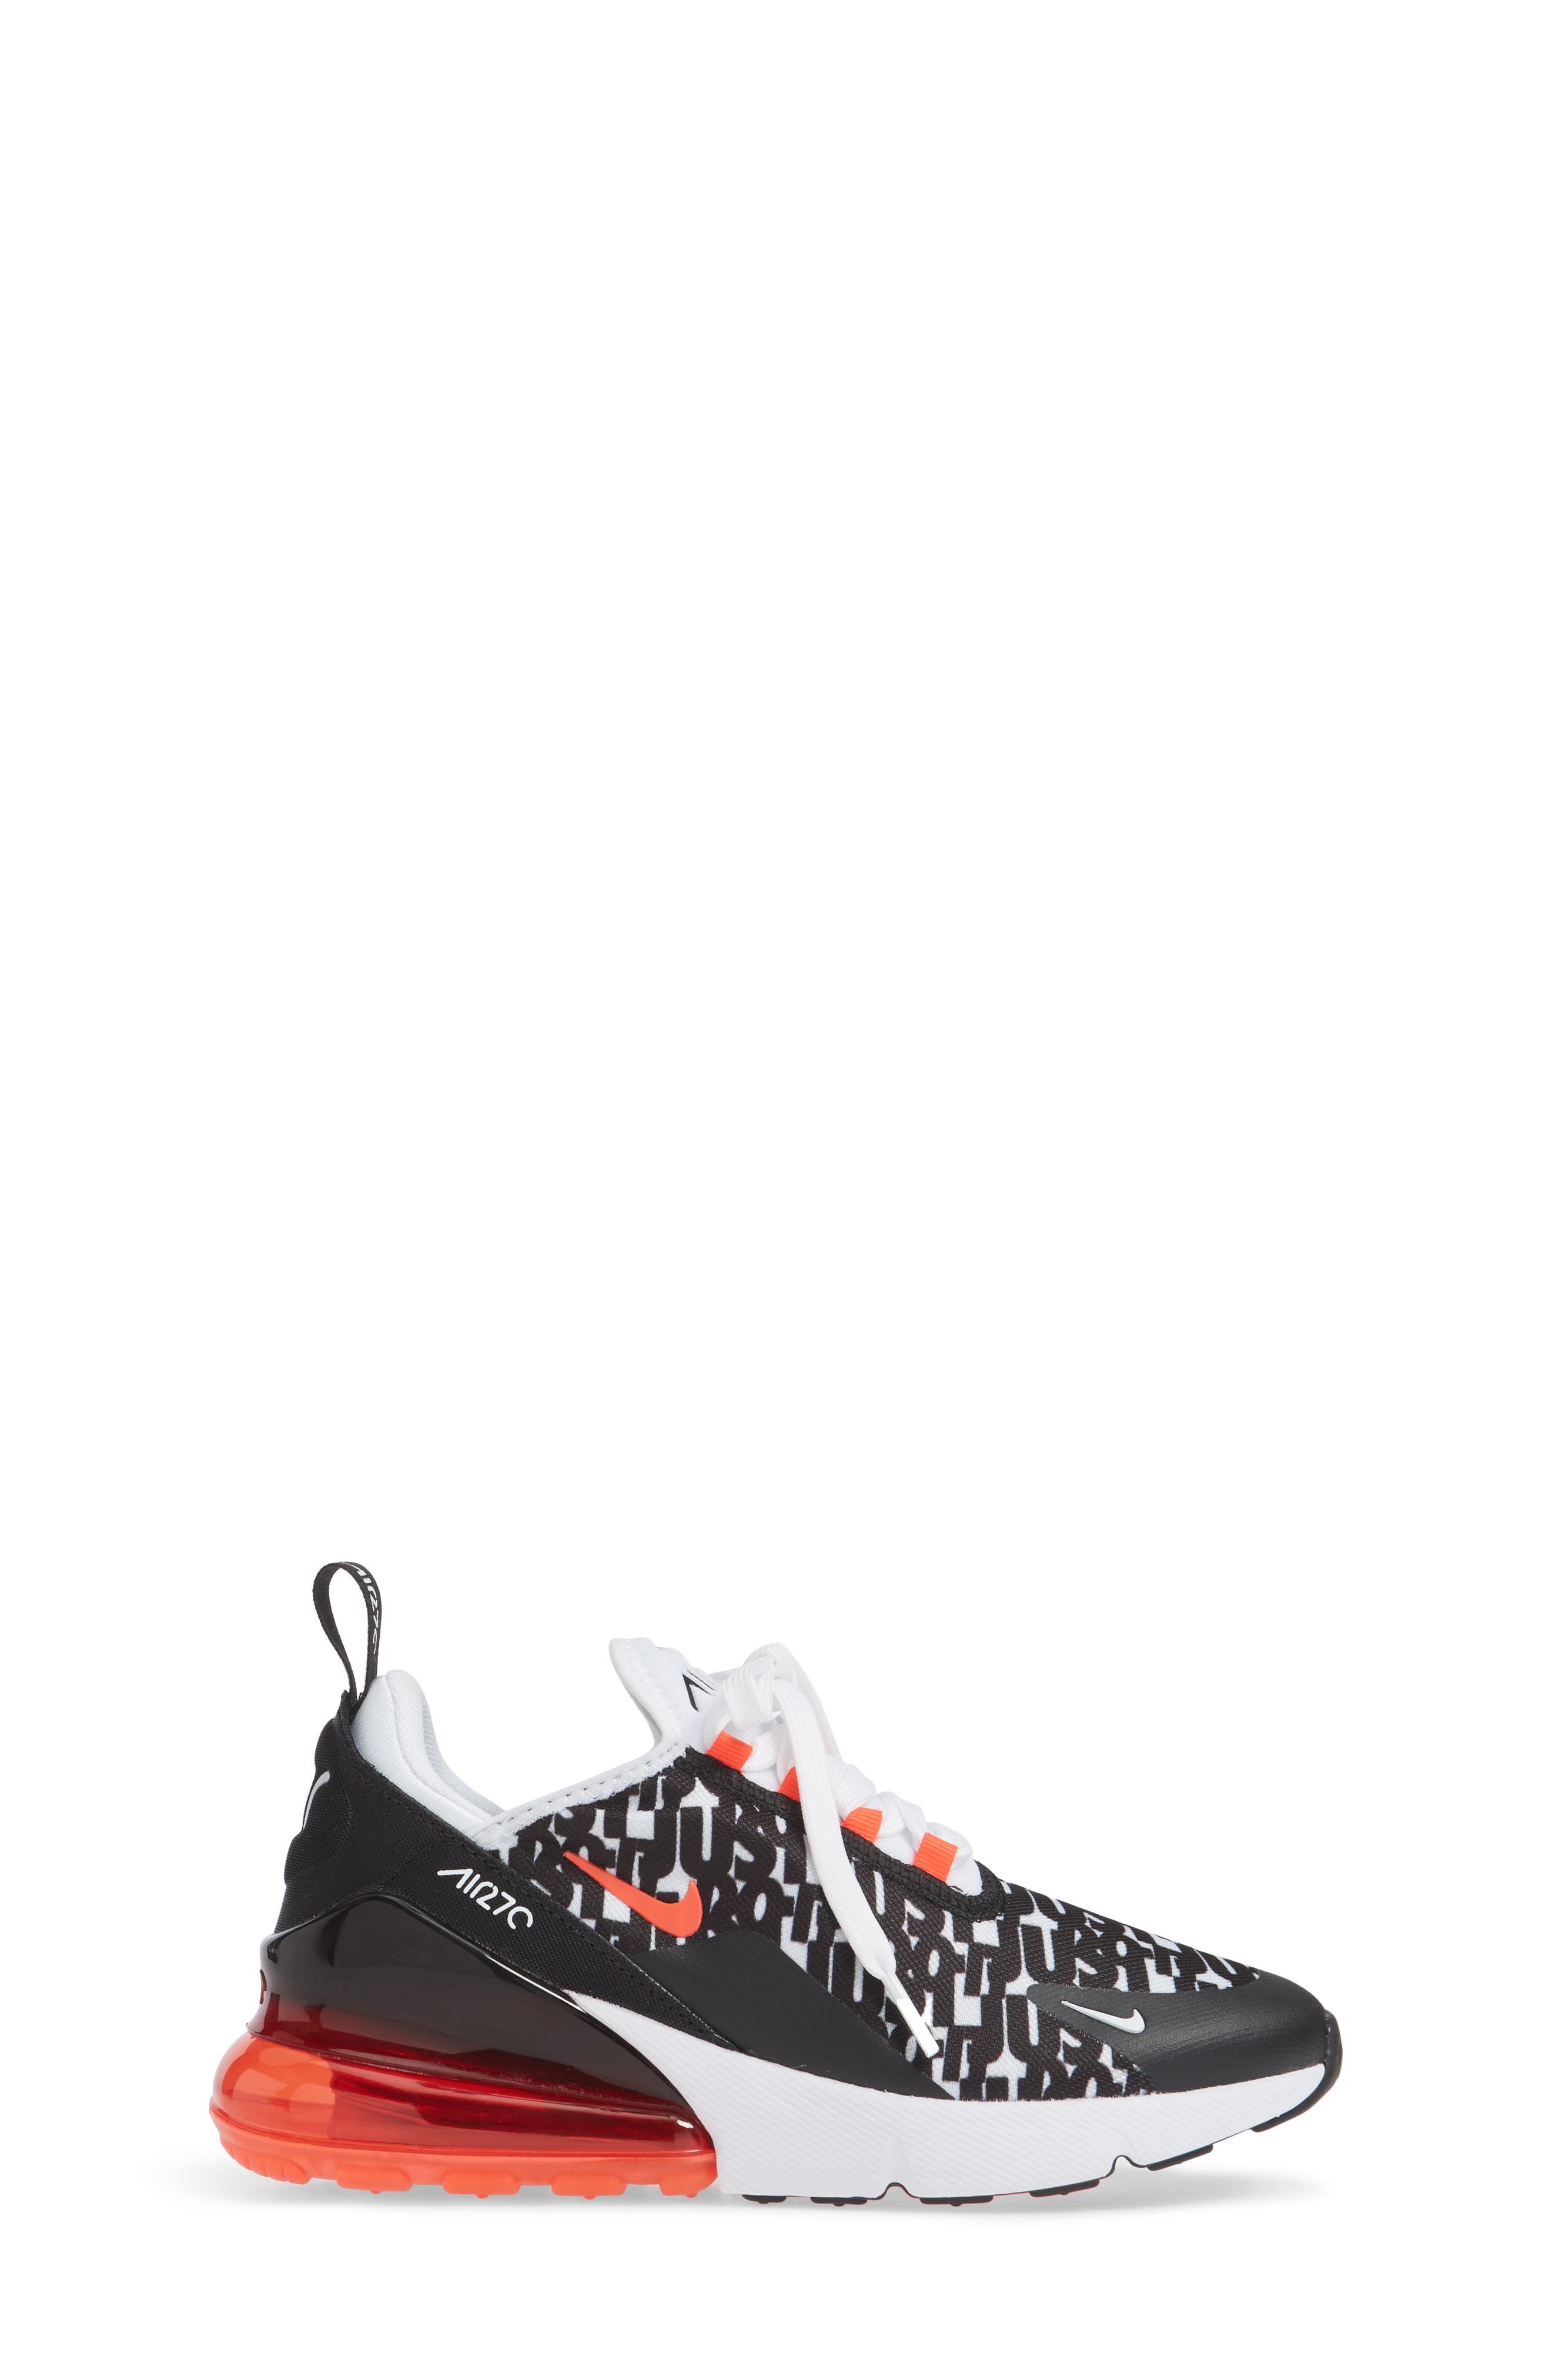 Air Max 270 Print Sneaker,                             Alternate thumbnail 3, color,                             BLACK/ WHITE/ BRIGHT CRIMSON